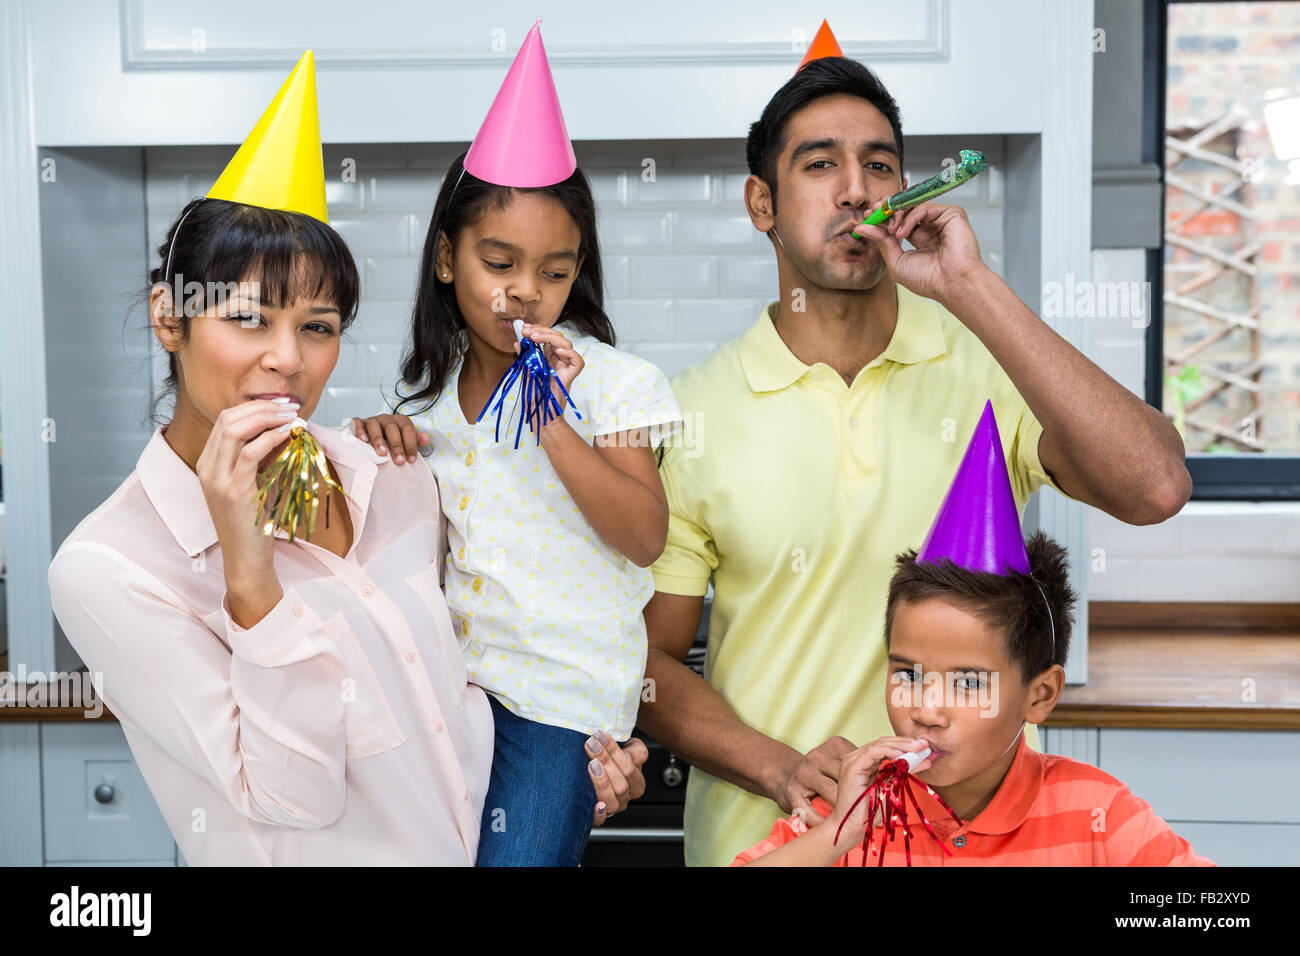 Happy family partying in the kitchen - Stock Image